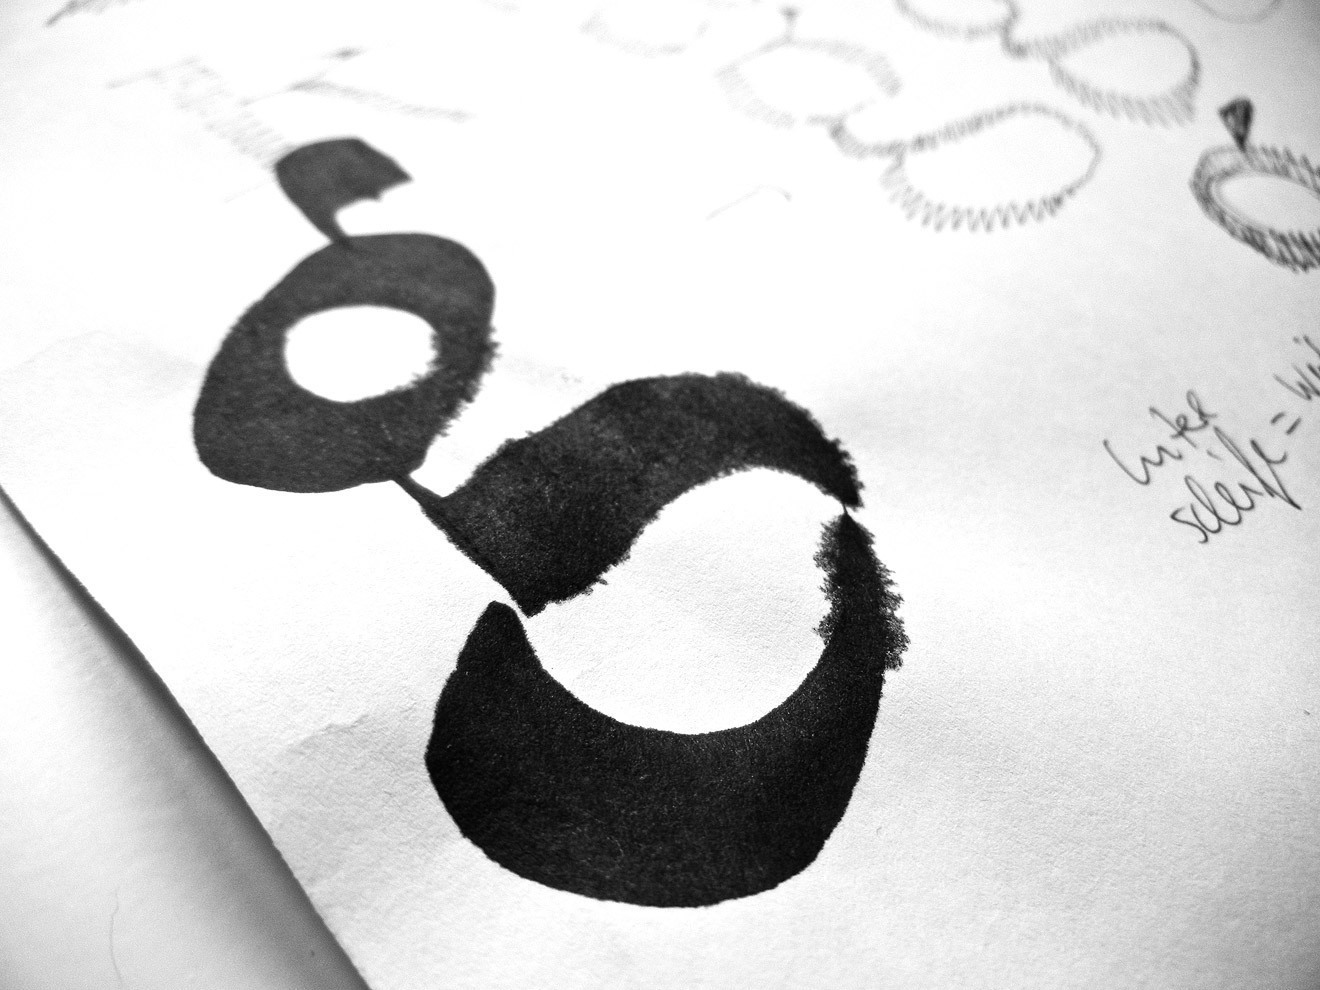 Unexpected Inspiration Doodling In Calligraphy Class Gives Birth To The Distinctively Shaped Lowercase G